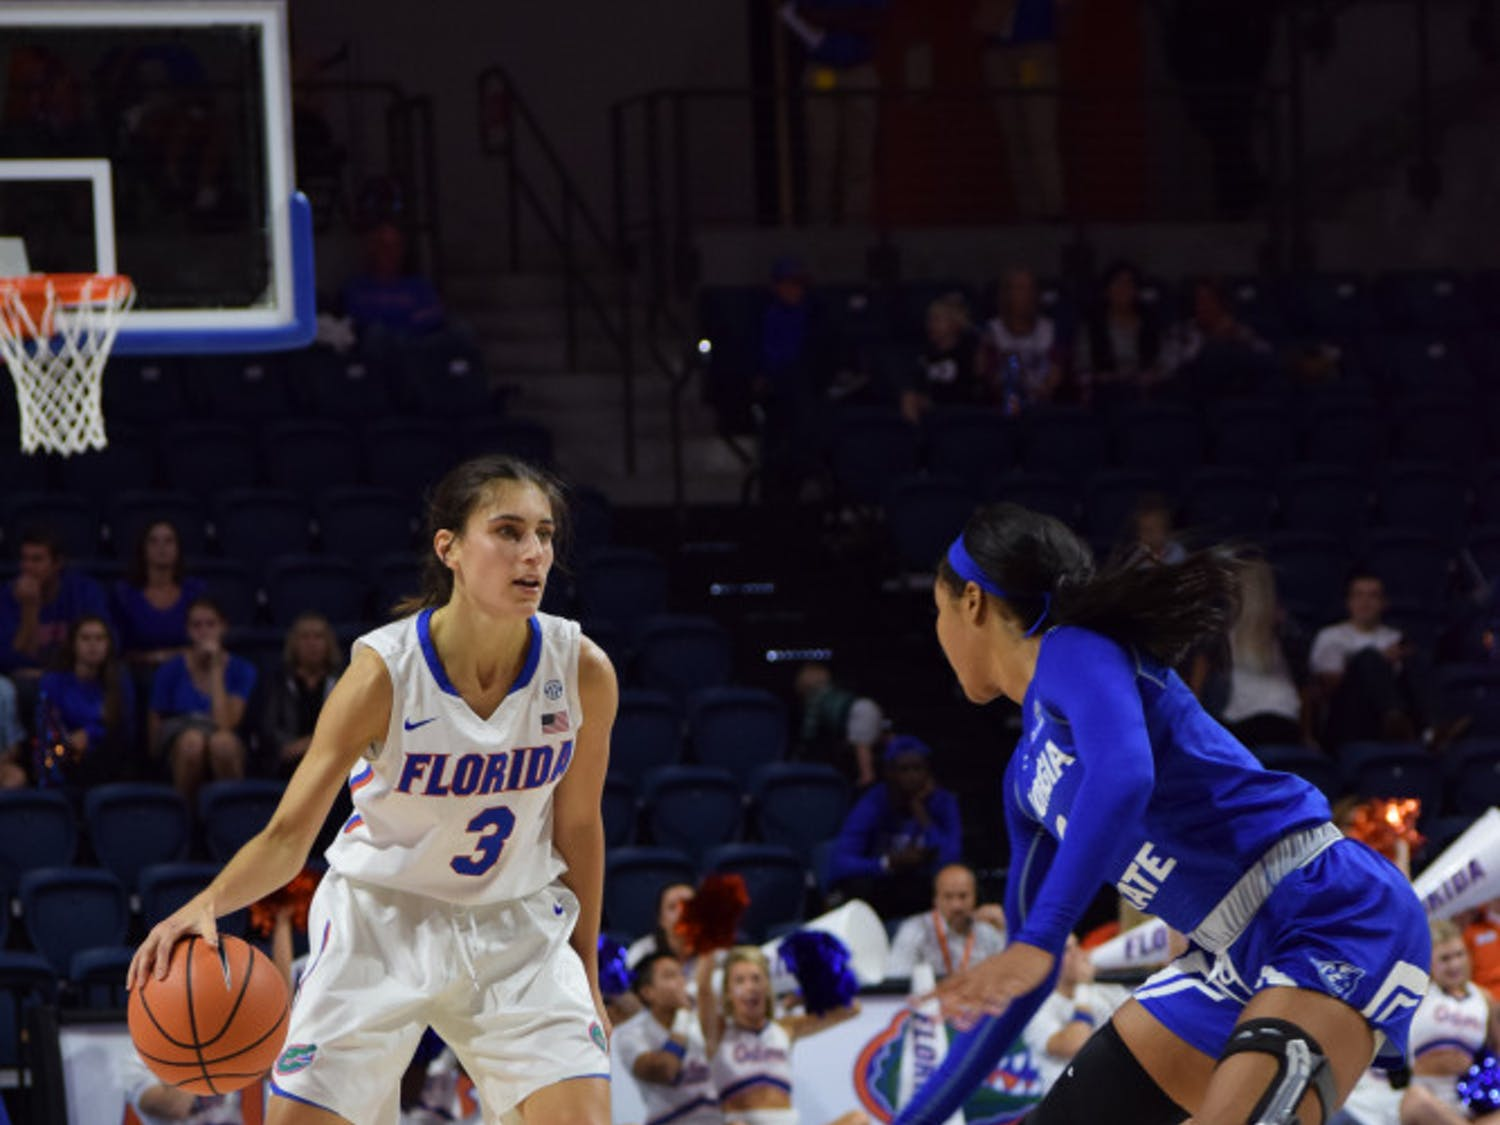 UF guard Funda Nakkasoglu sat out the final two games of the Savannah Invitational. She hopes to be back on the court against Jacksonville.